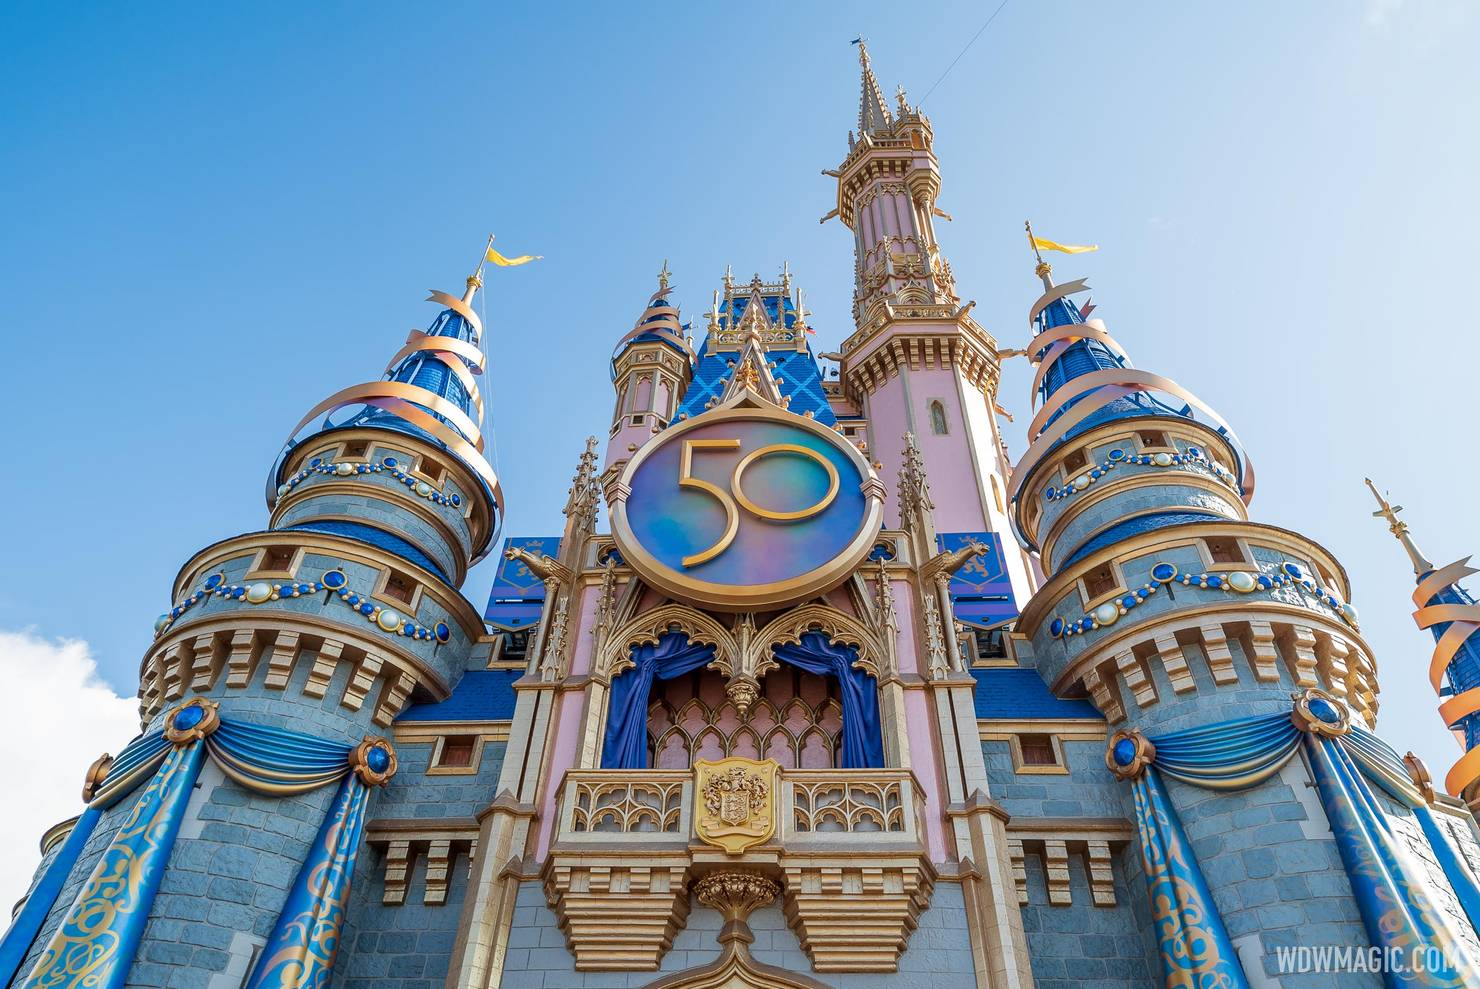 50th crest added to Cinderella Castle